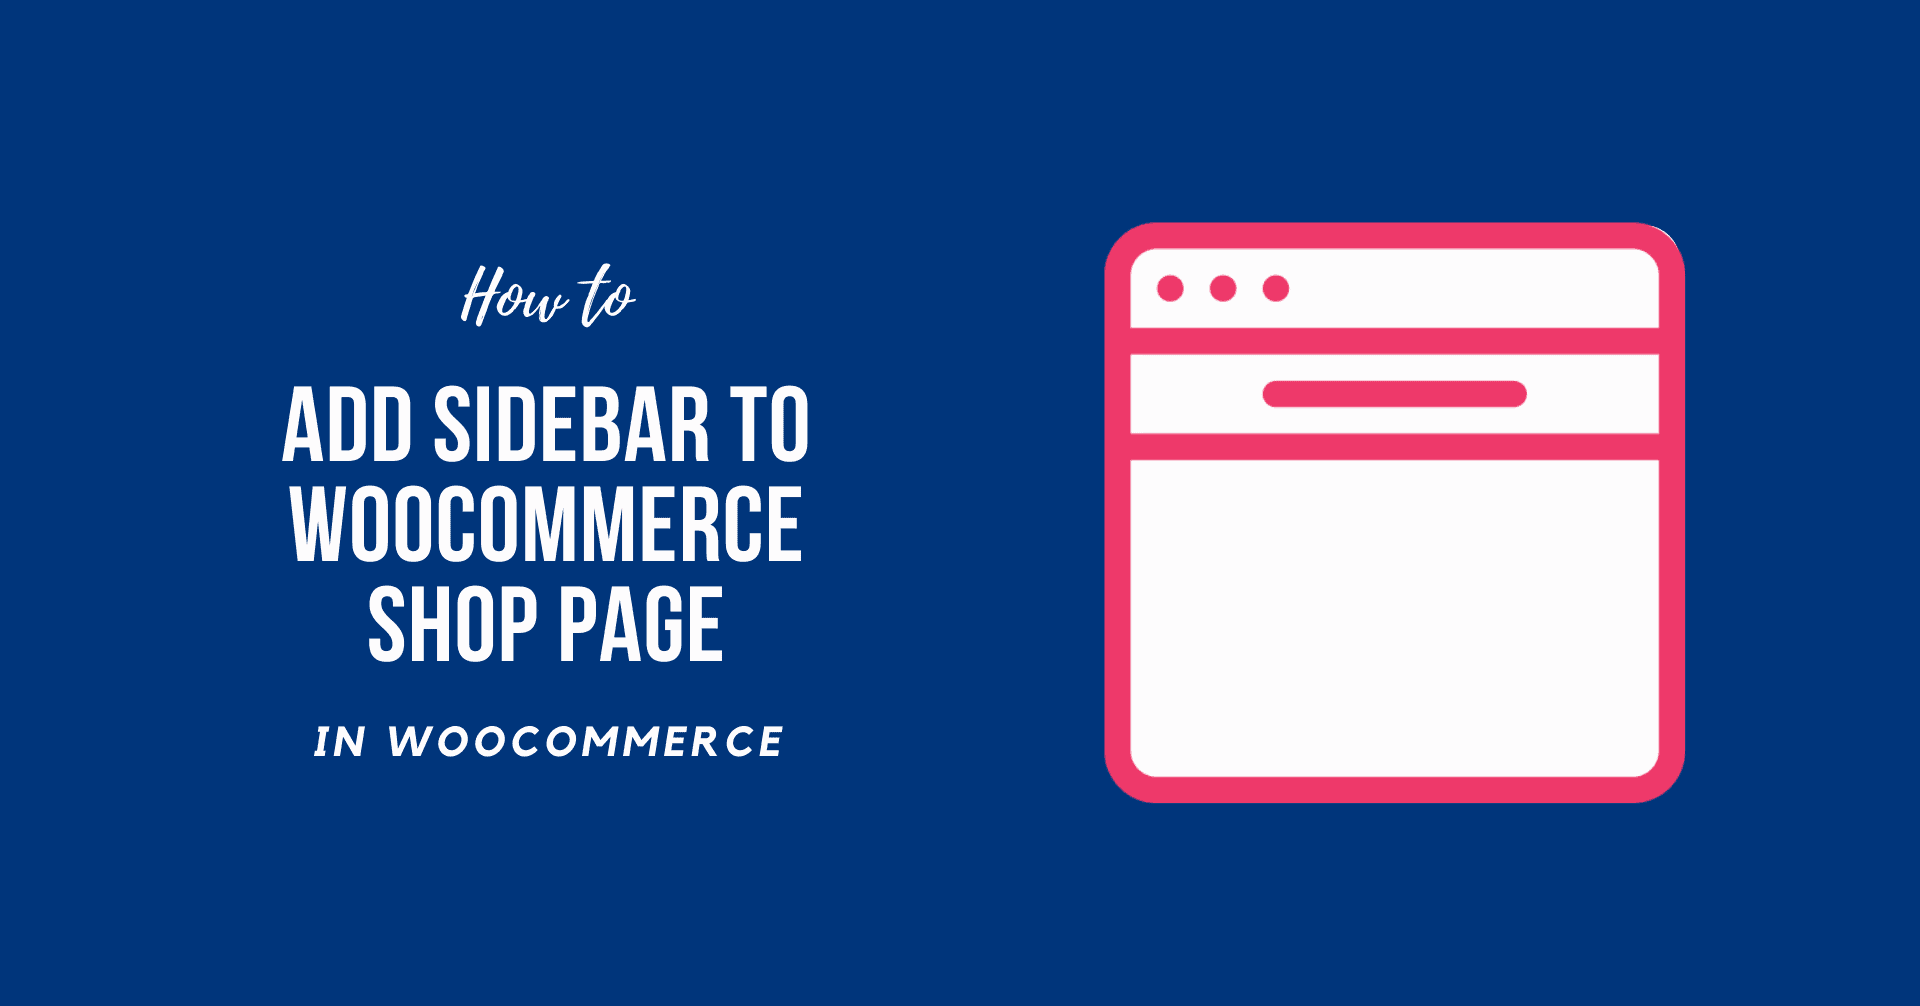 How to Add Sidebar to WooCommerce Shop Page